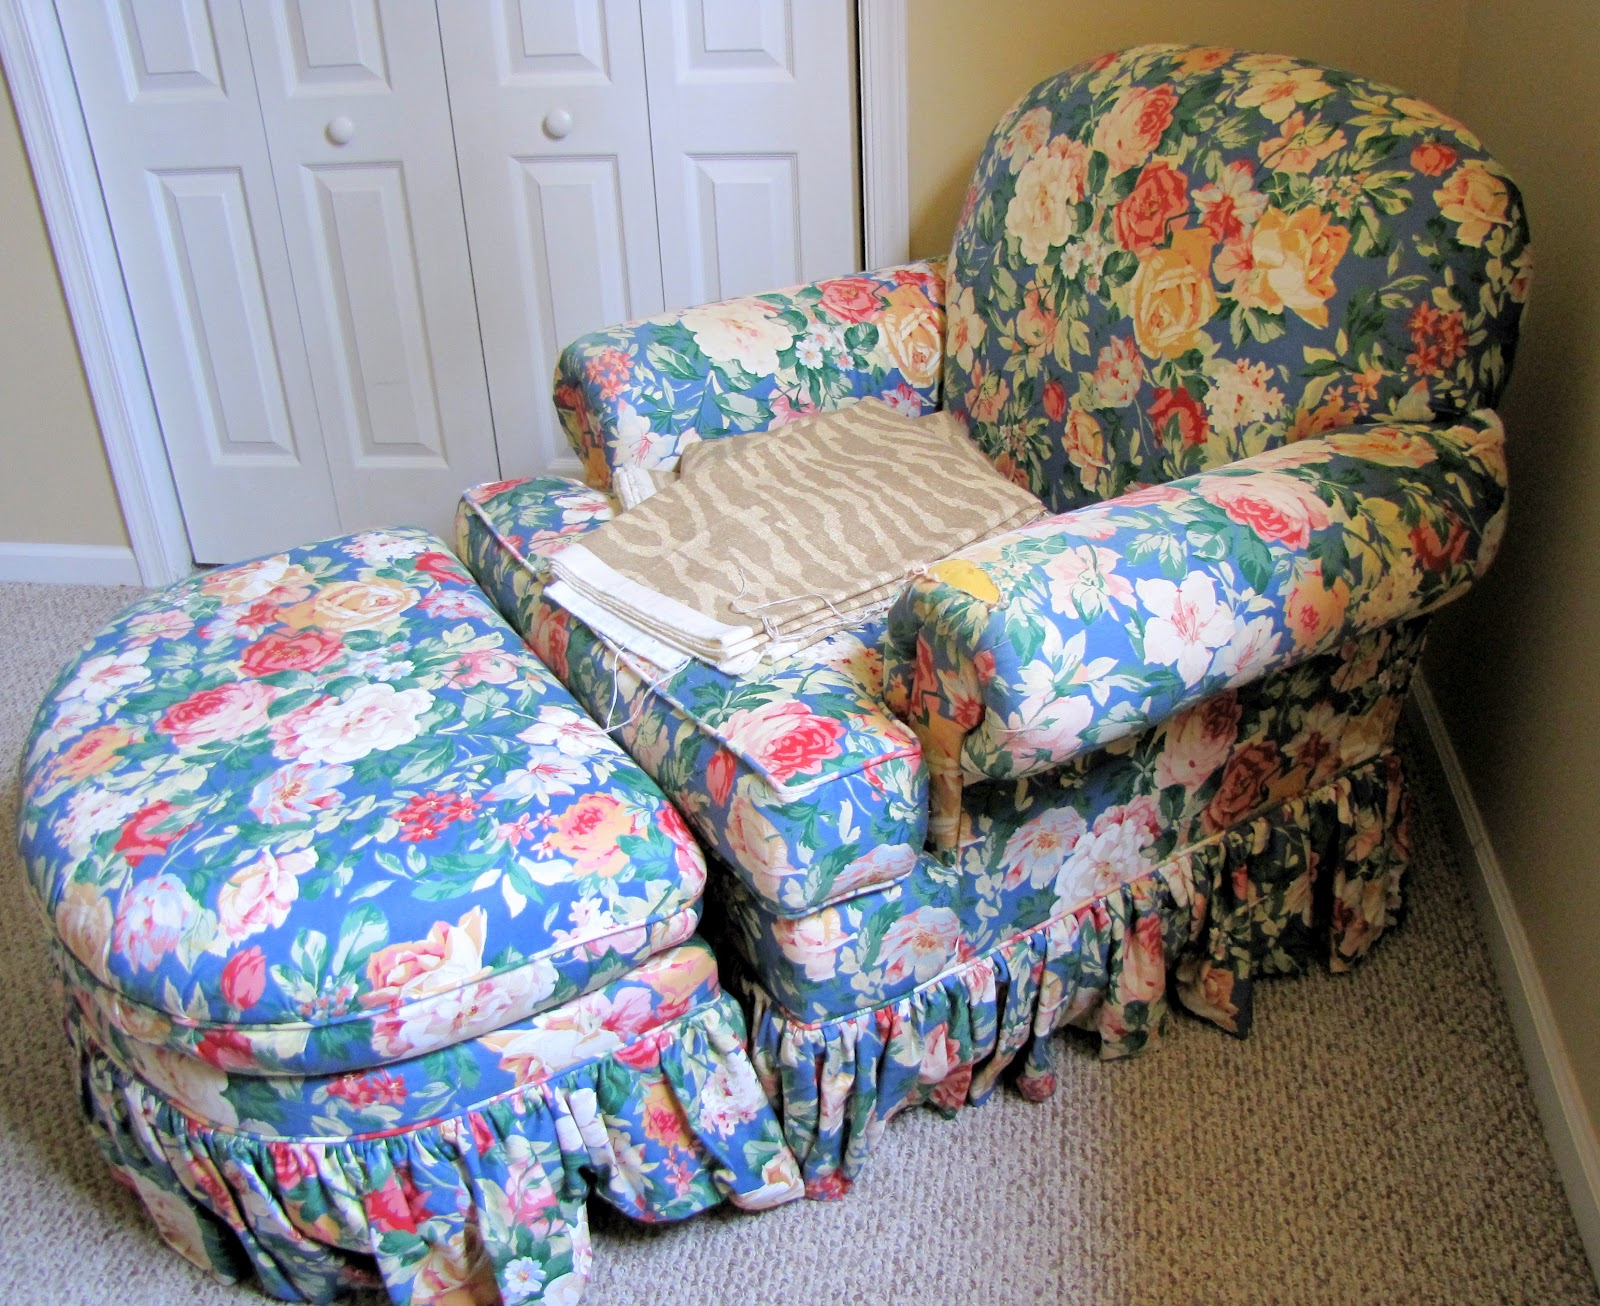 Slipcover For Oversized Chair And Ottoman Goodbye House Hello Home Blog Armchair And Ottoman Slipcover